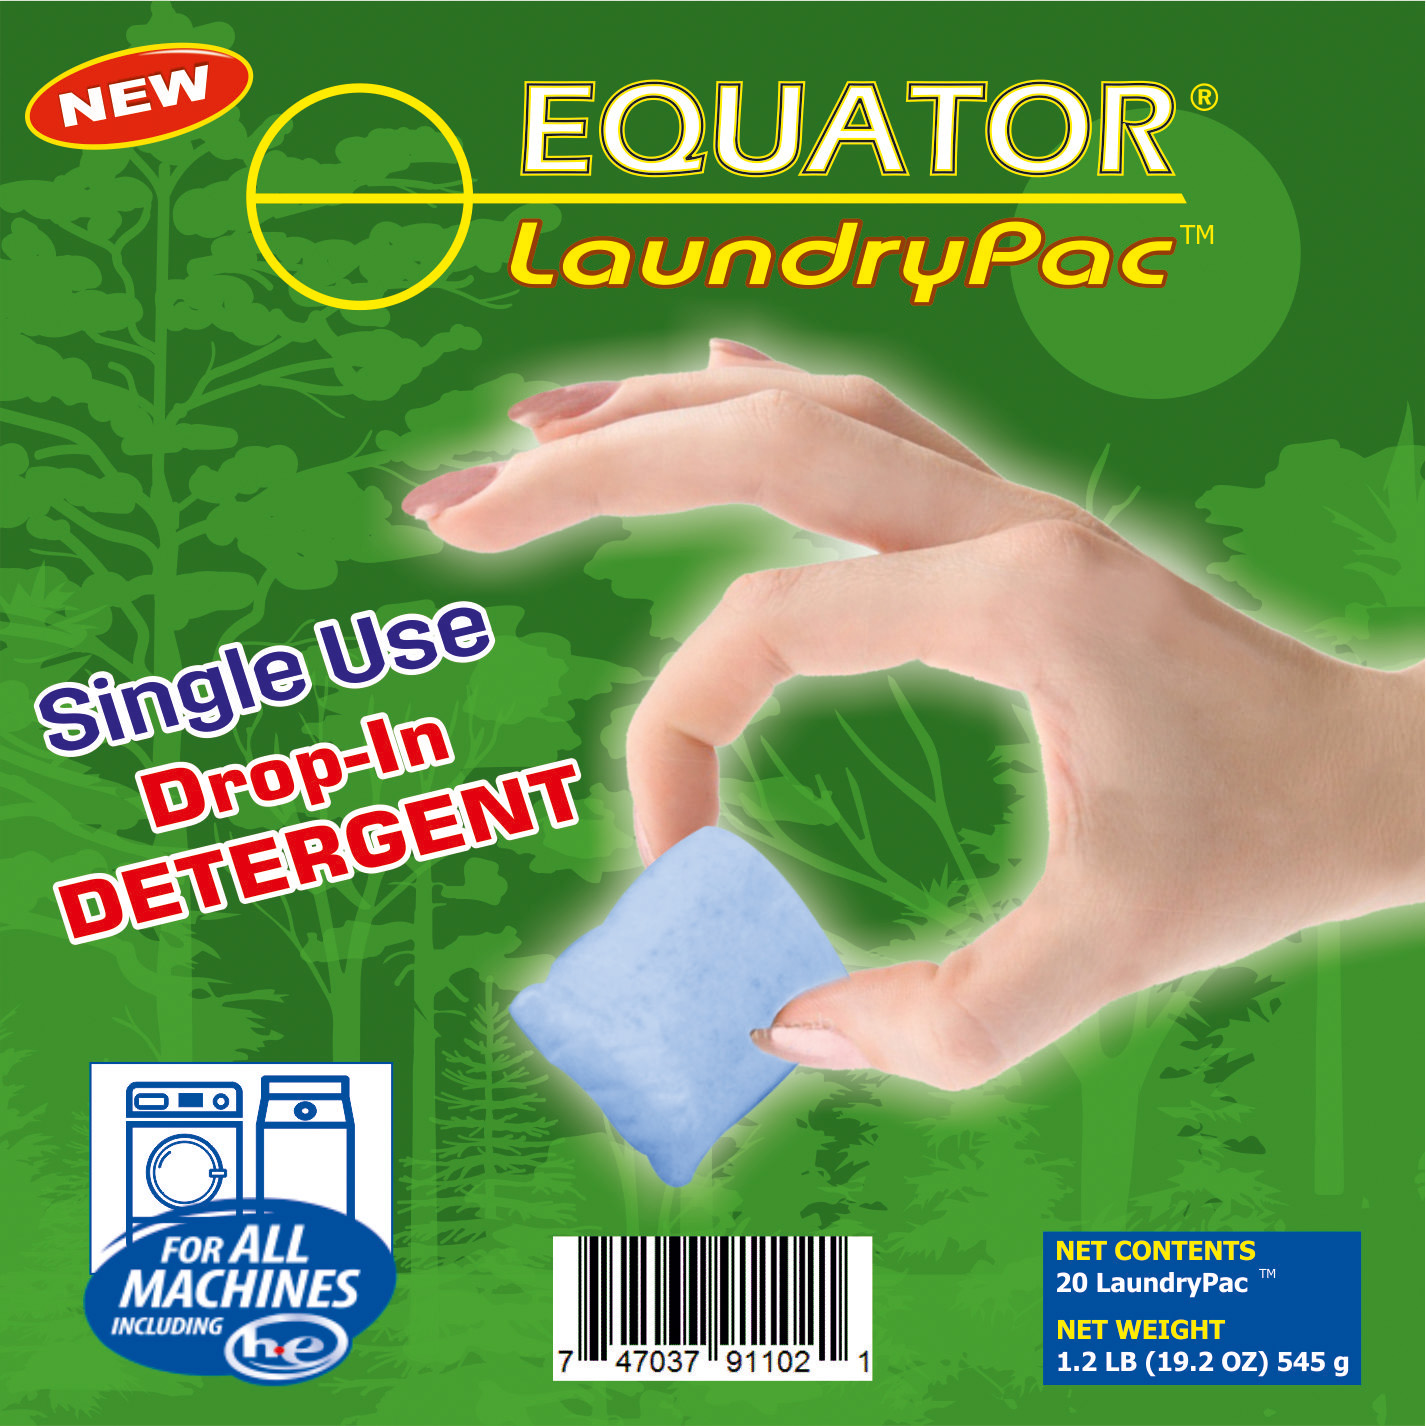 LaundryPac detergent powder (HED 3856)